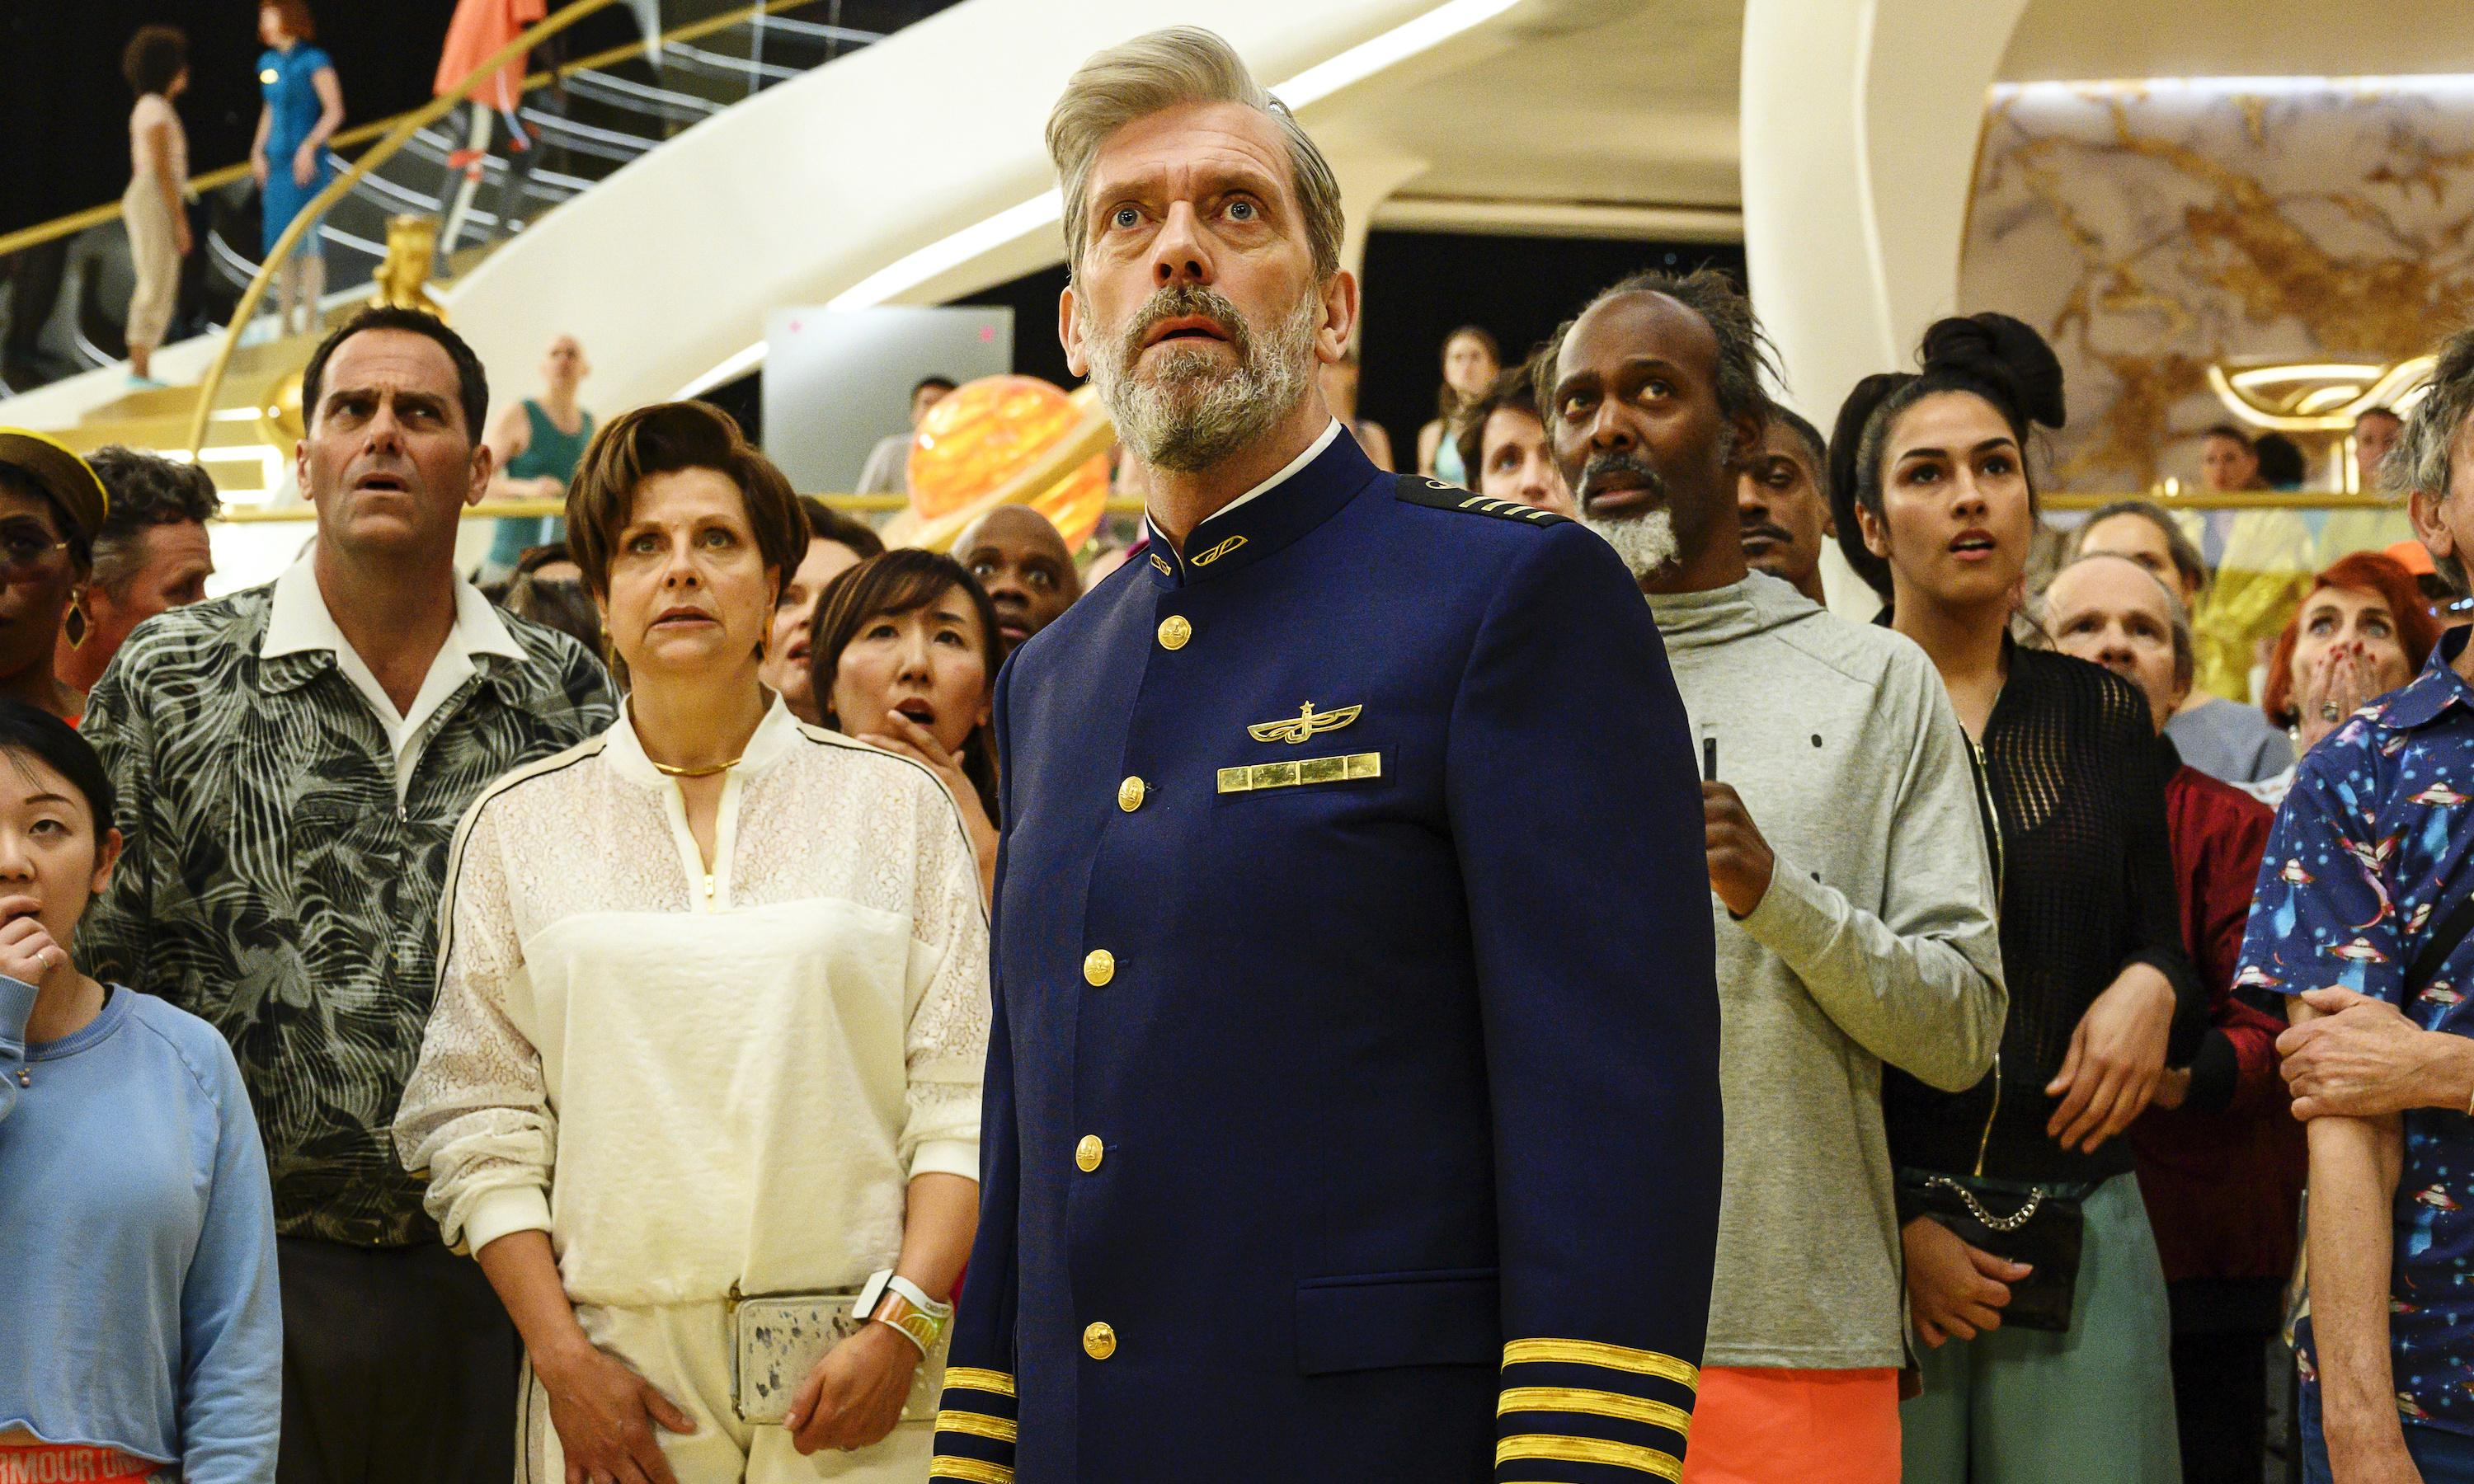 TV tonight: Hugh Laurie in a deep space fiasco